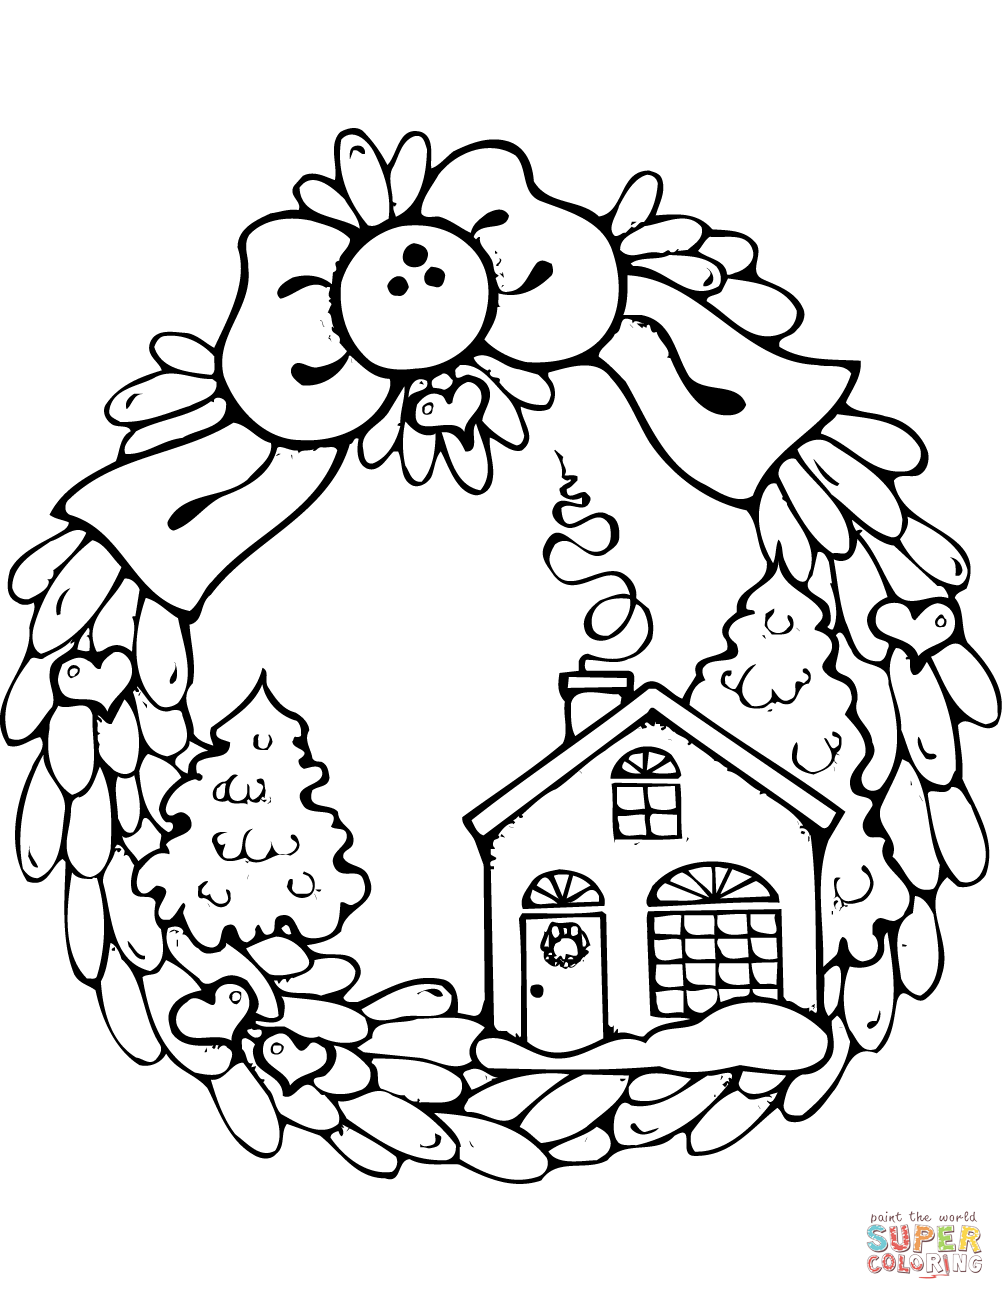 Gingerbread House Coloring Page Free Coloring Pages Download | Xsibe ...